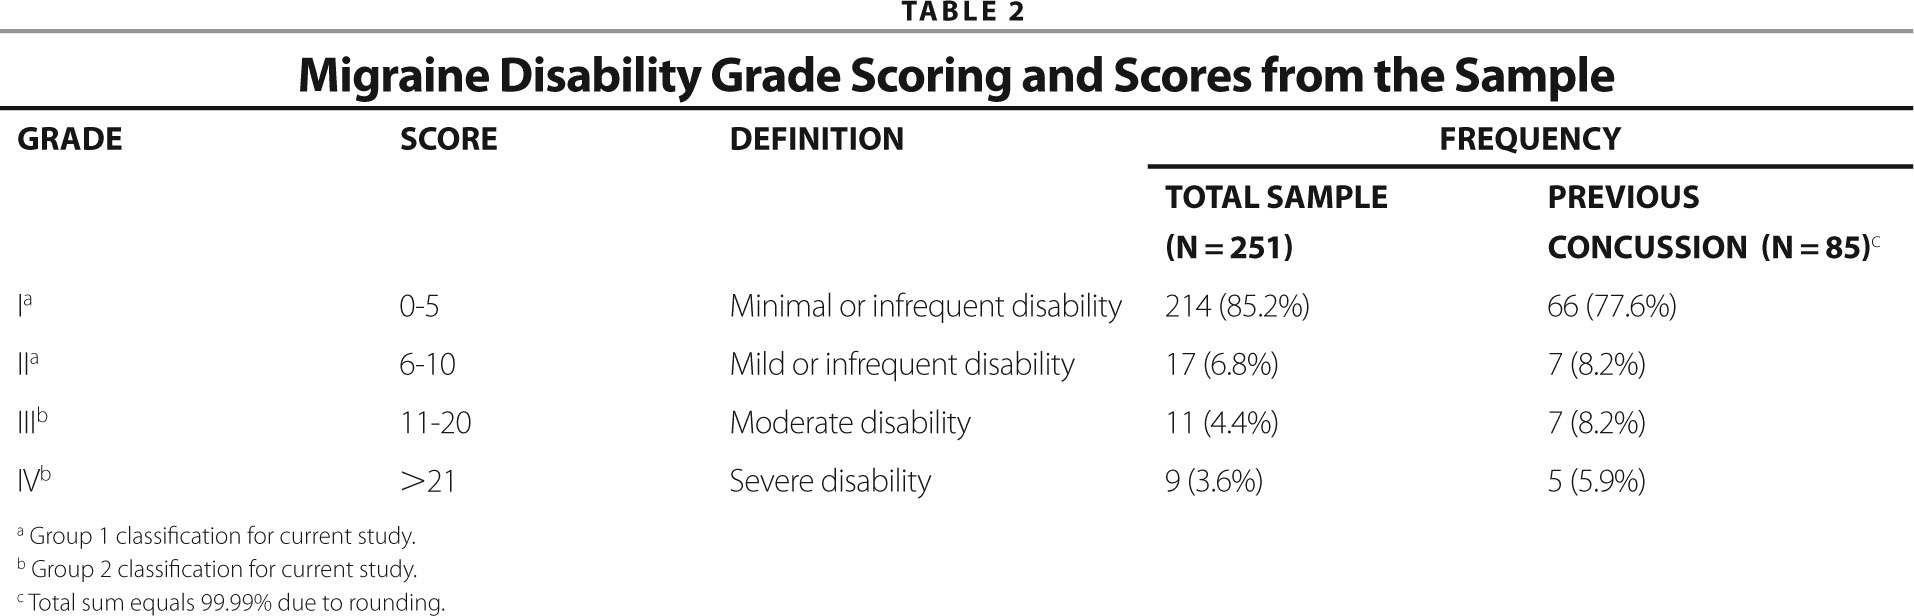 Migraine Disability Grade Scoring and Scores from the Sample